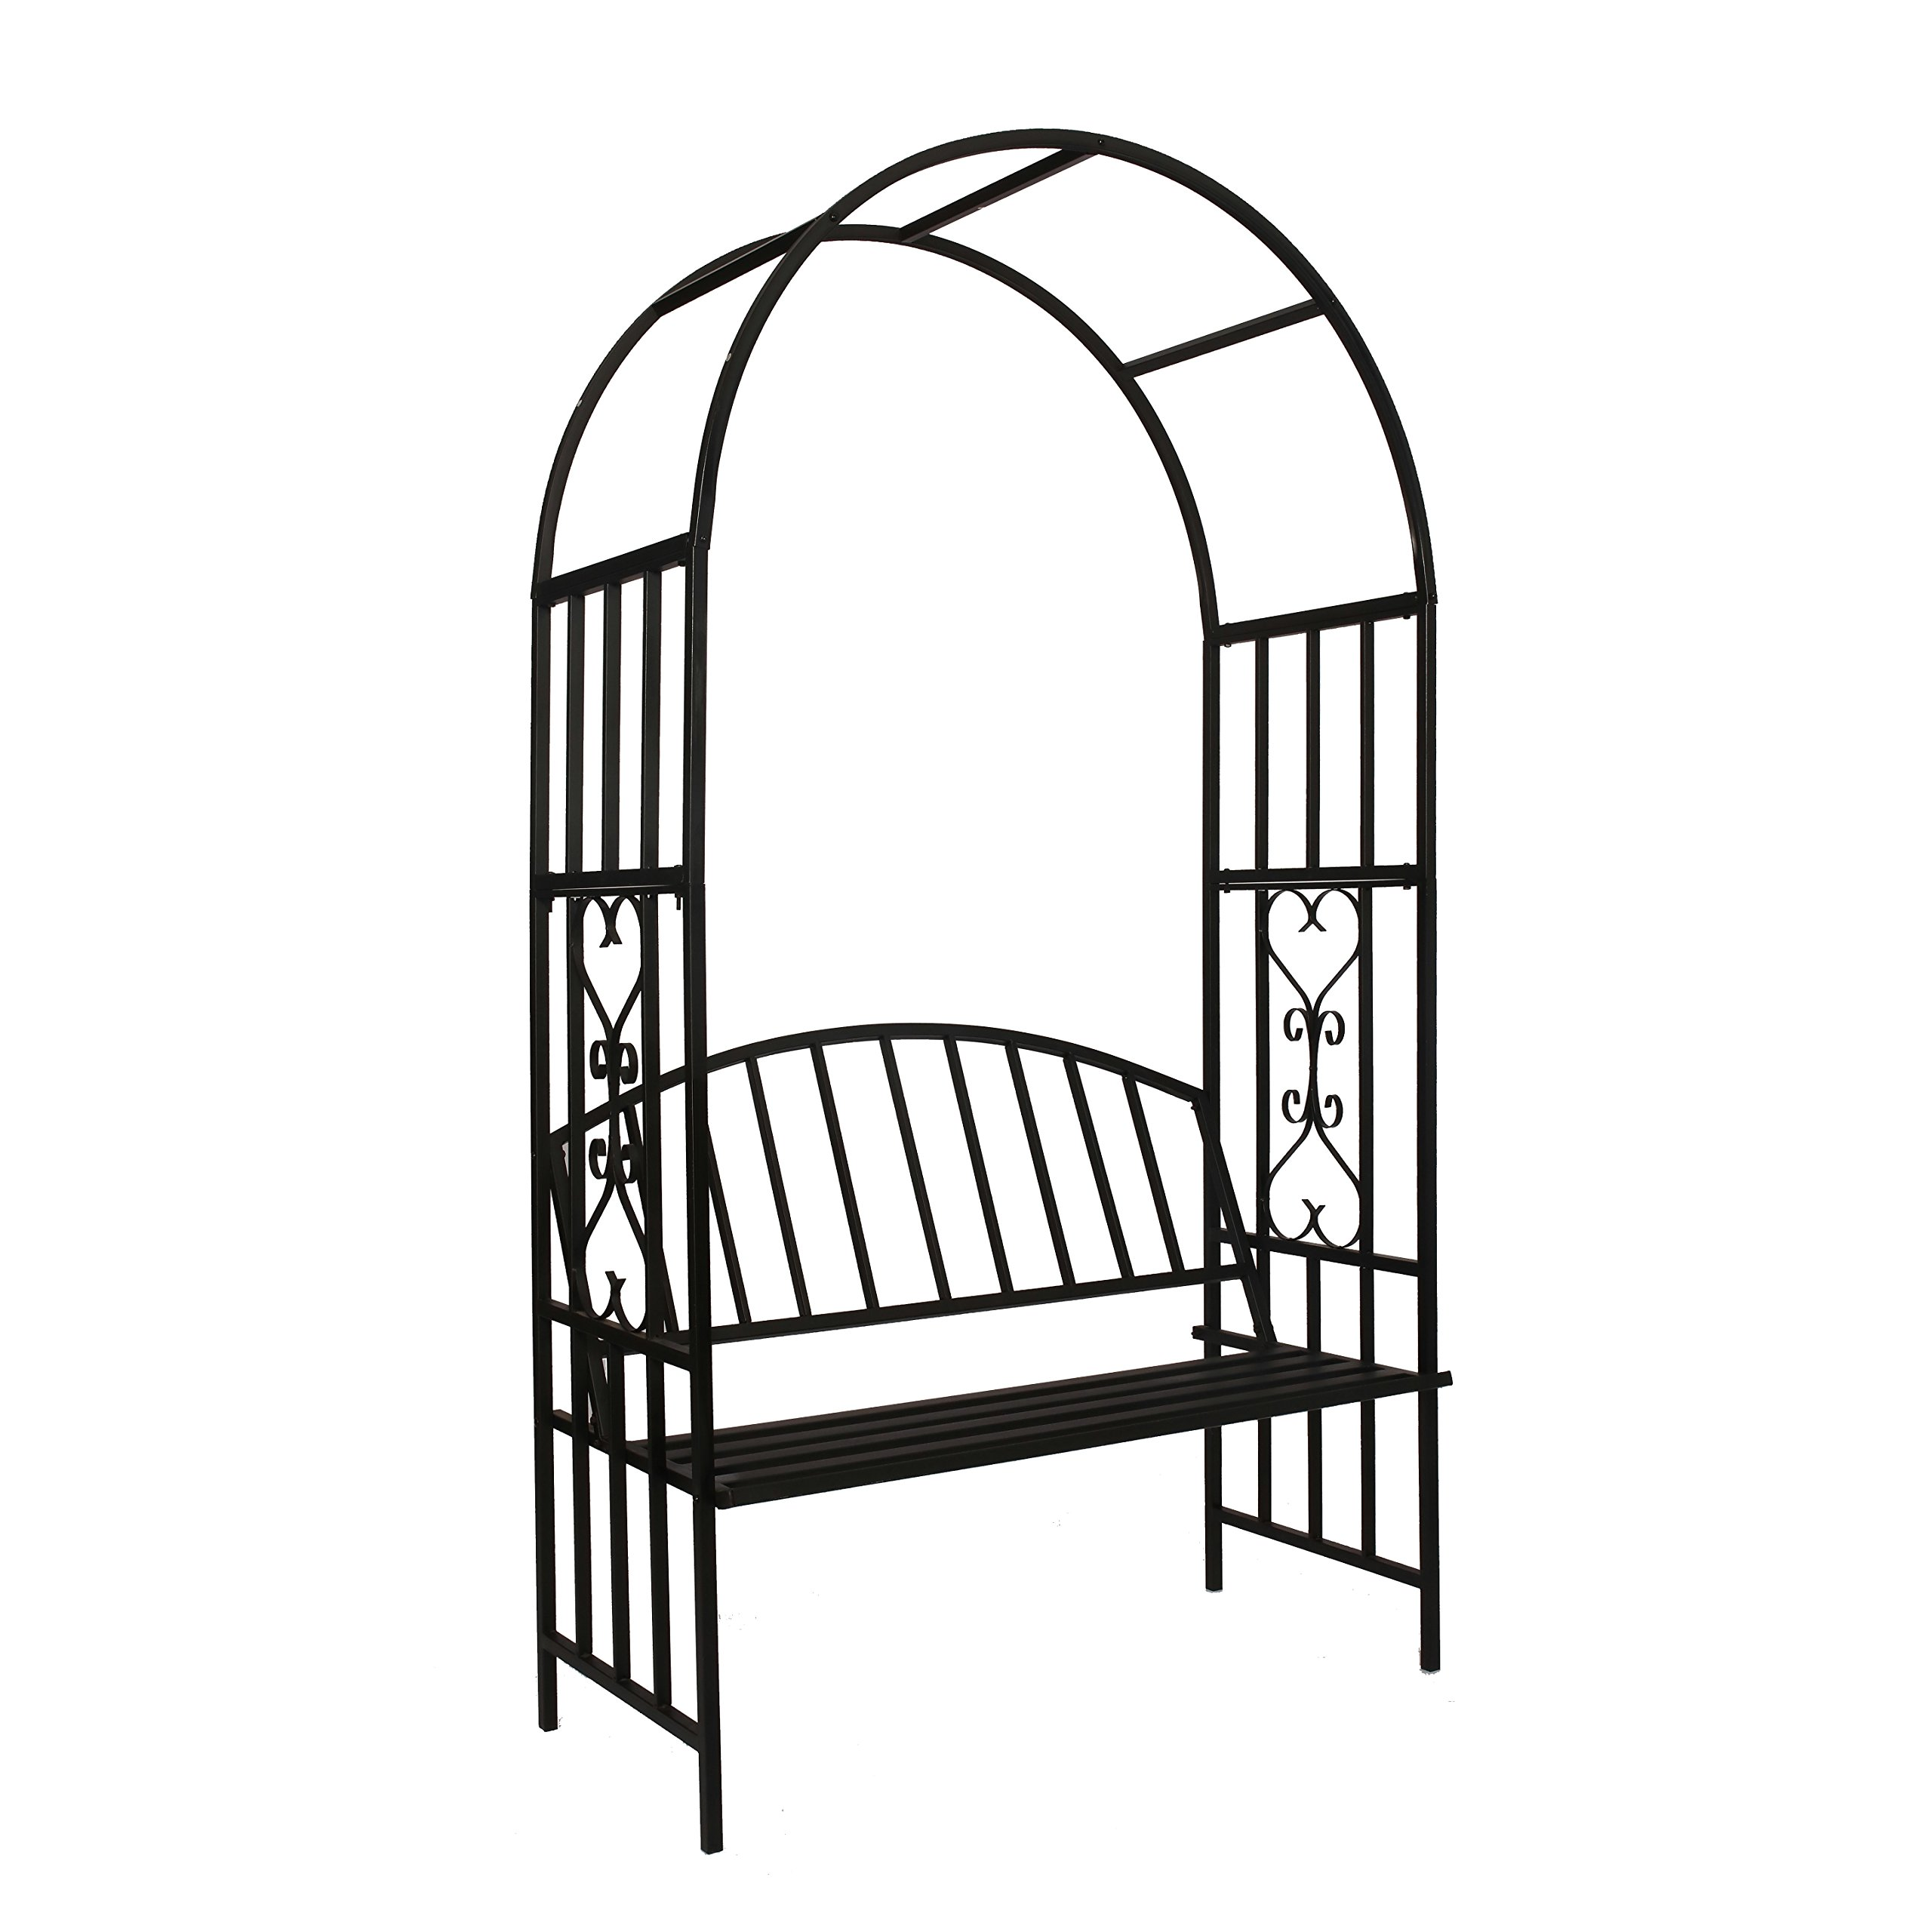 Better Garden Steel Garden Arch with Seat for 2 People, 6'7'' High x 3'7'' Wide, Garden Arbor for Various Climbing Plant, Outdoor Garden Lawn Backyard